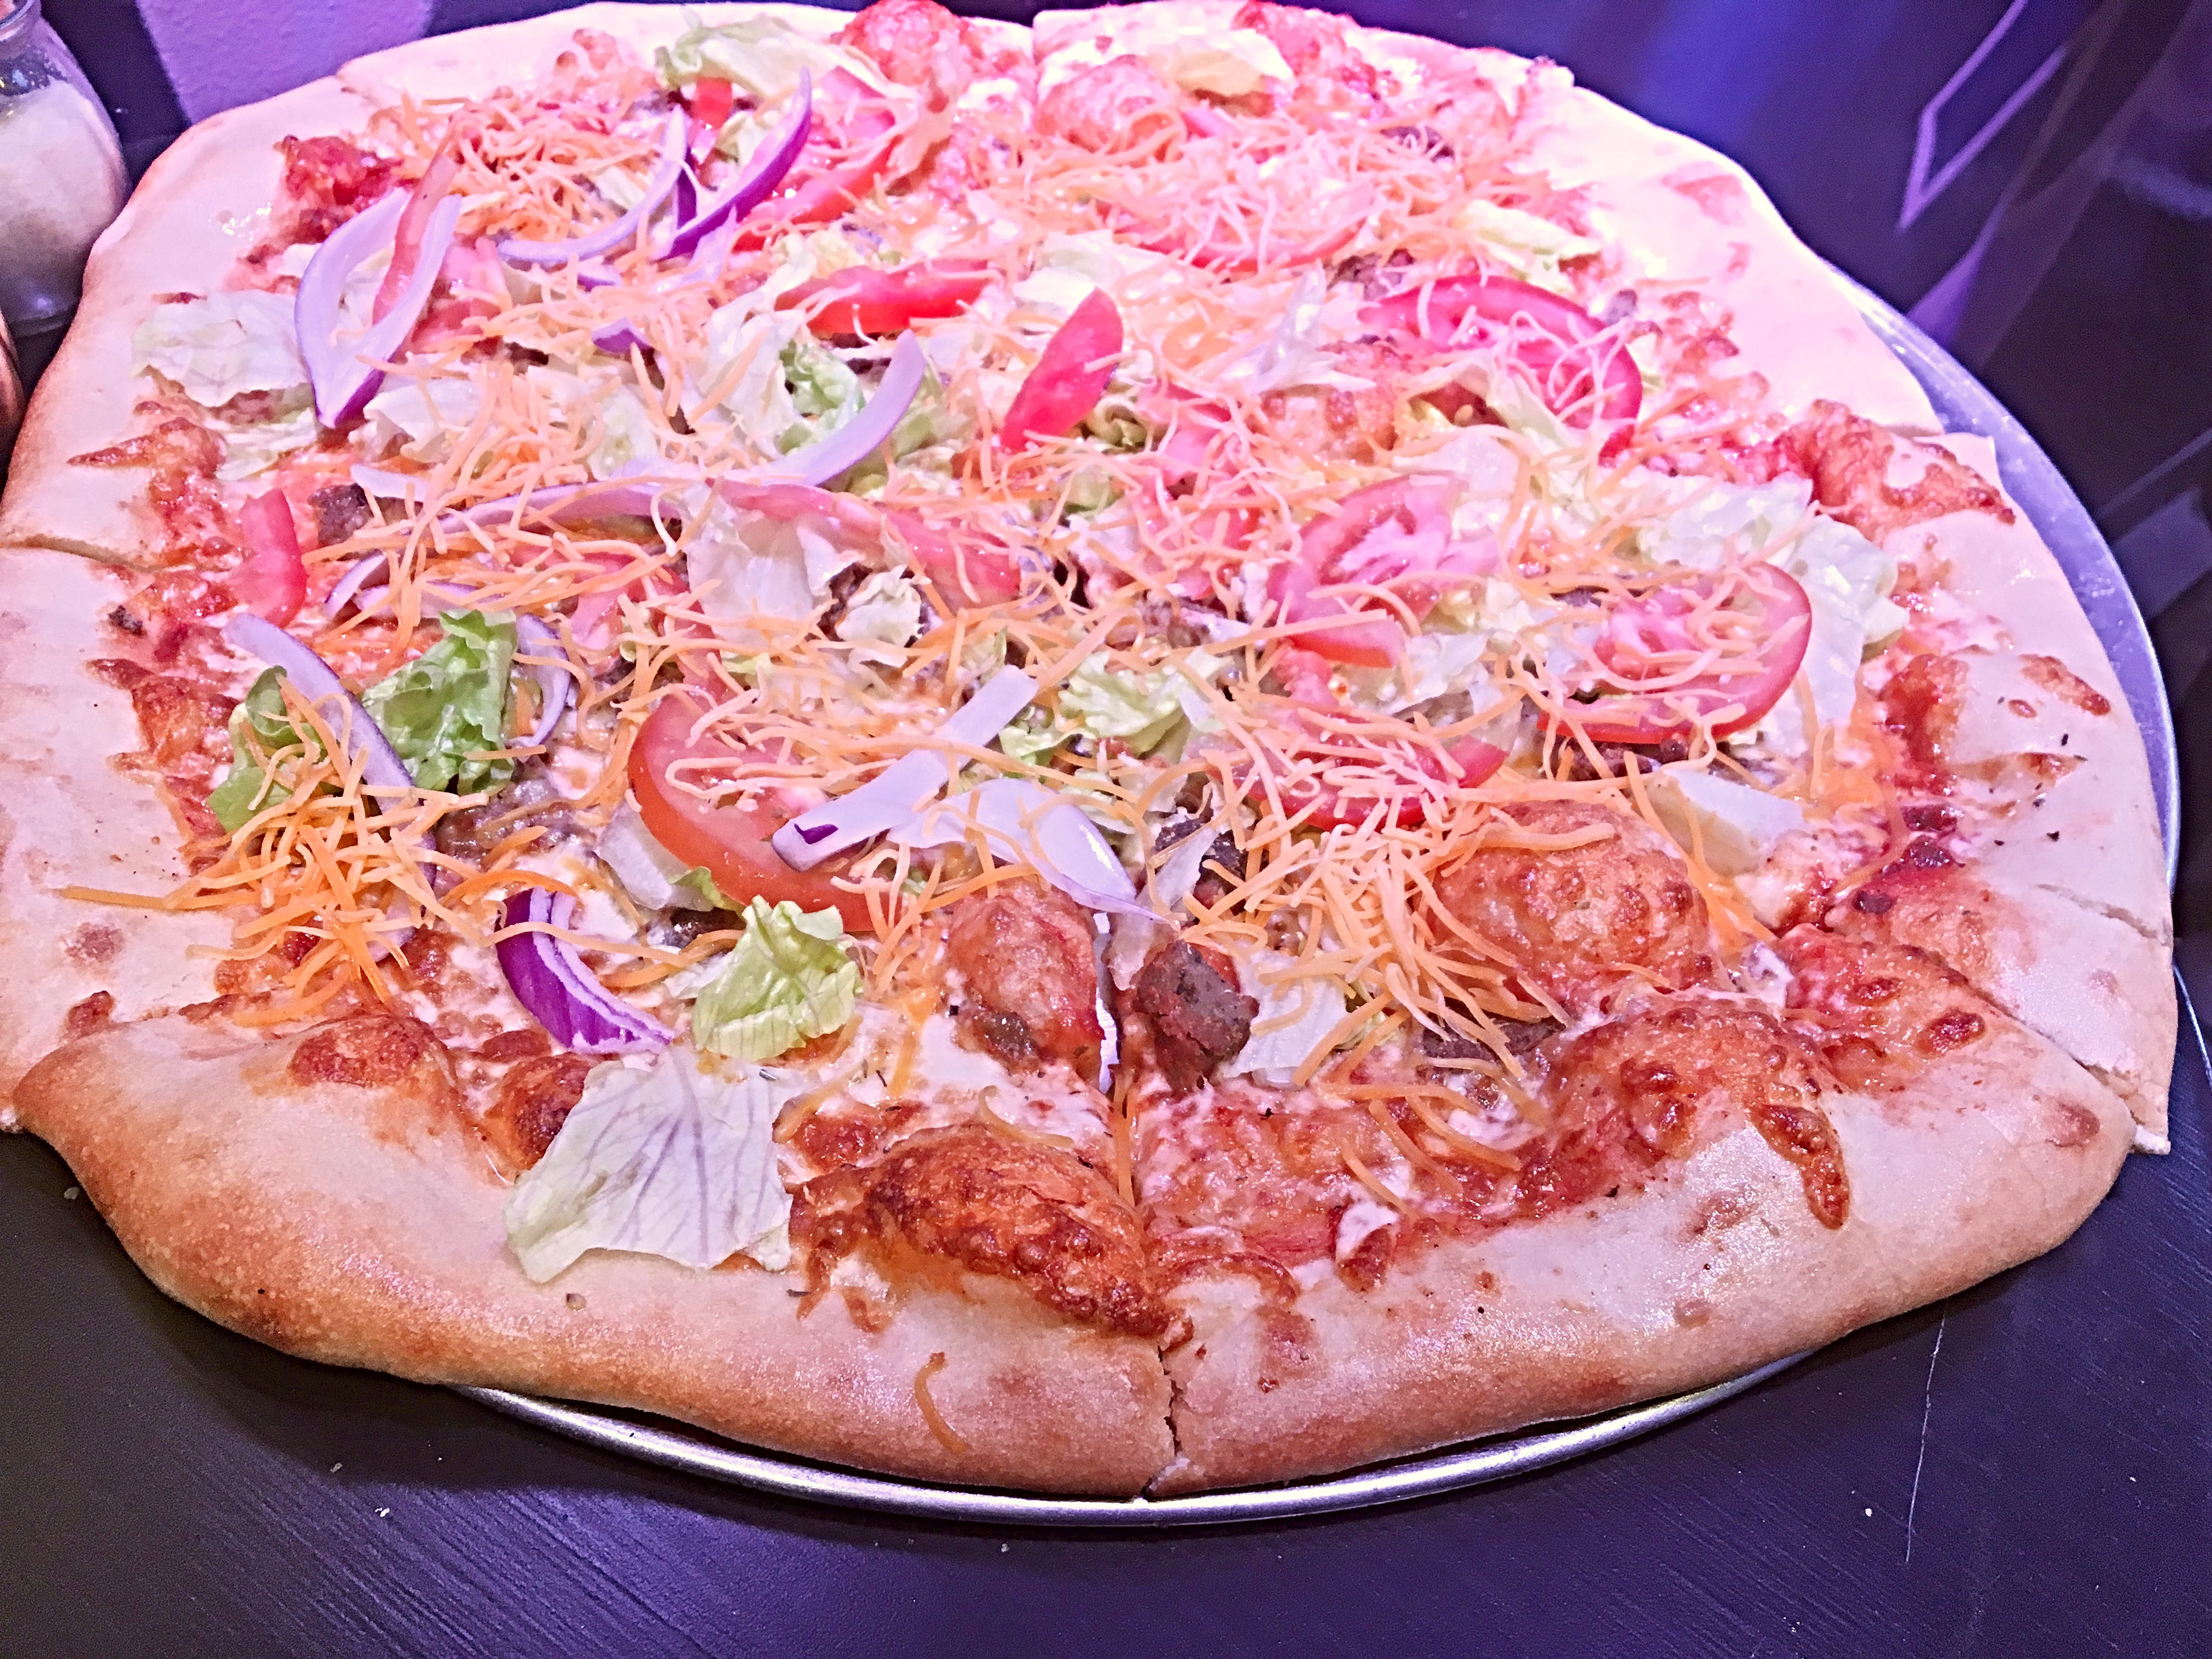 Taco pizza at Spinelli's features everything you'd have on a taco: ground beef, onions, tomatoes, lettuce and cheese.